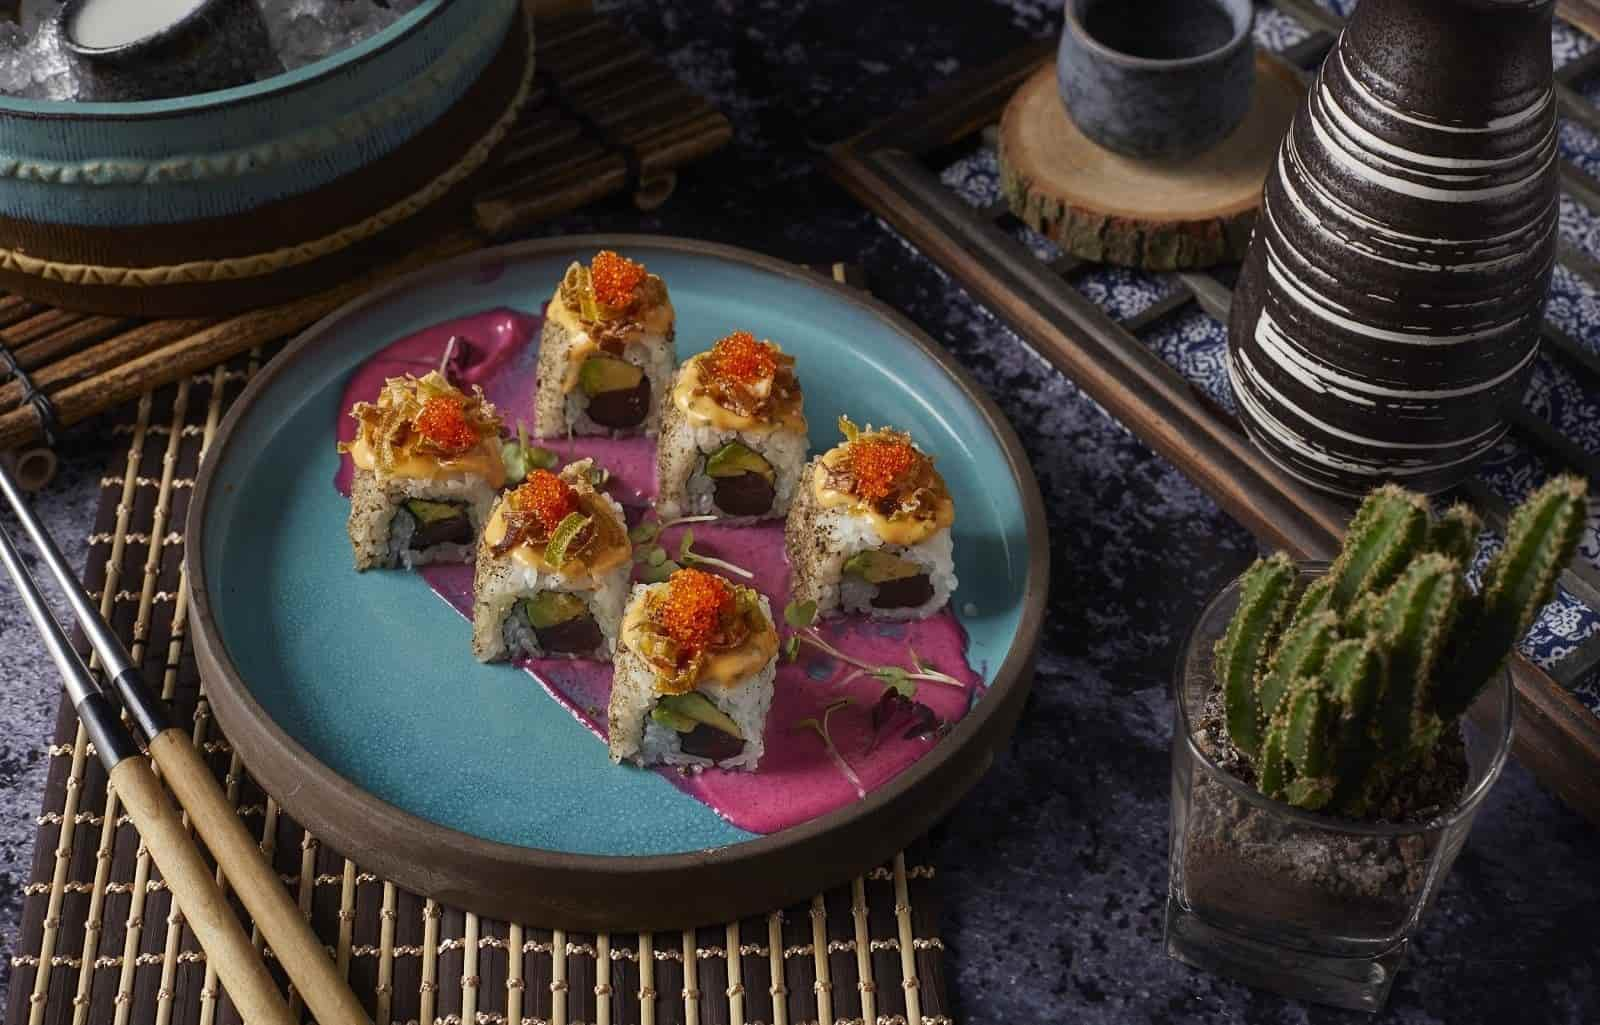 Hong Kong Eateries Using Japanese Ingredients